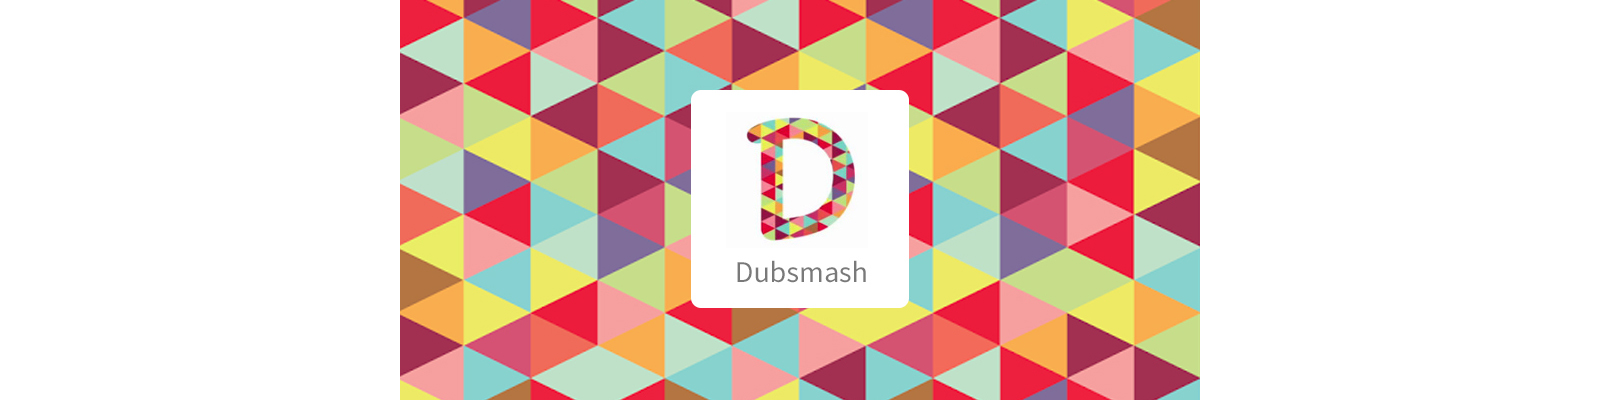 dubsmash app development